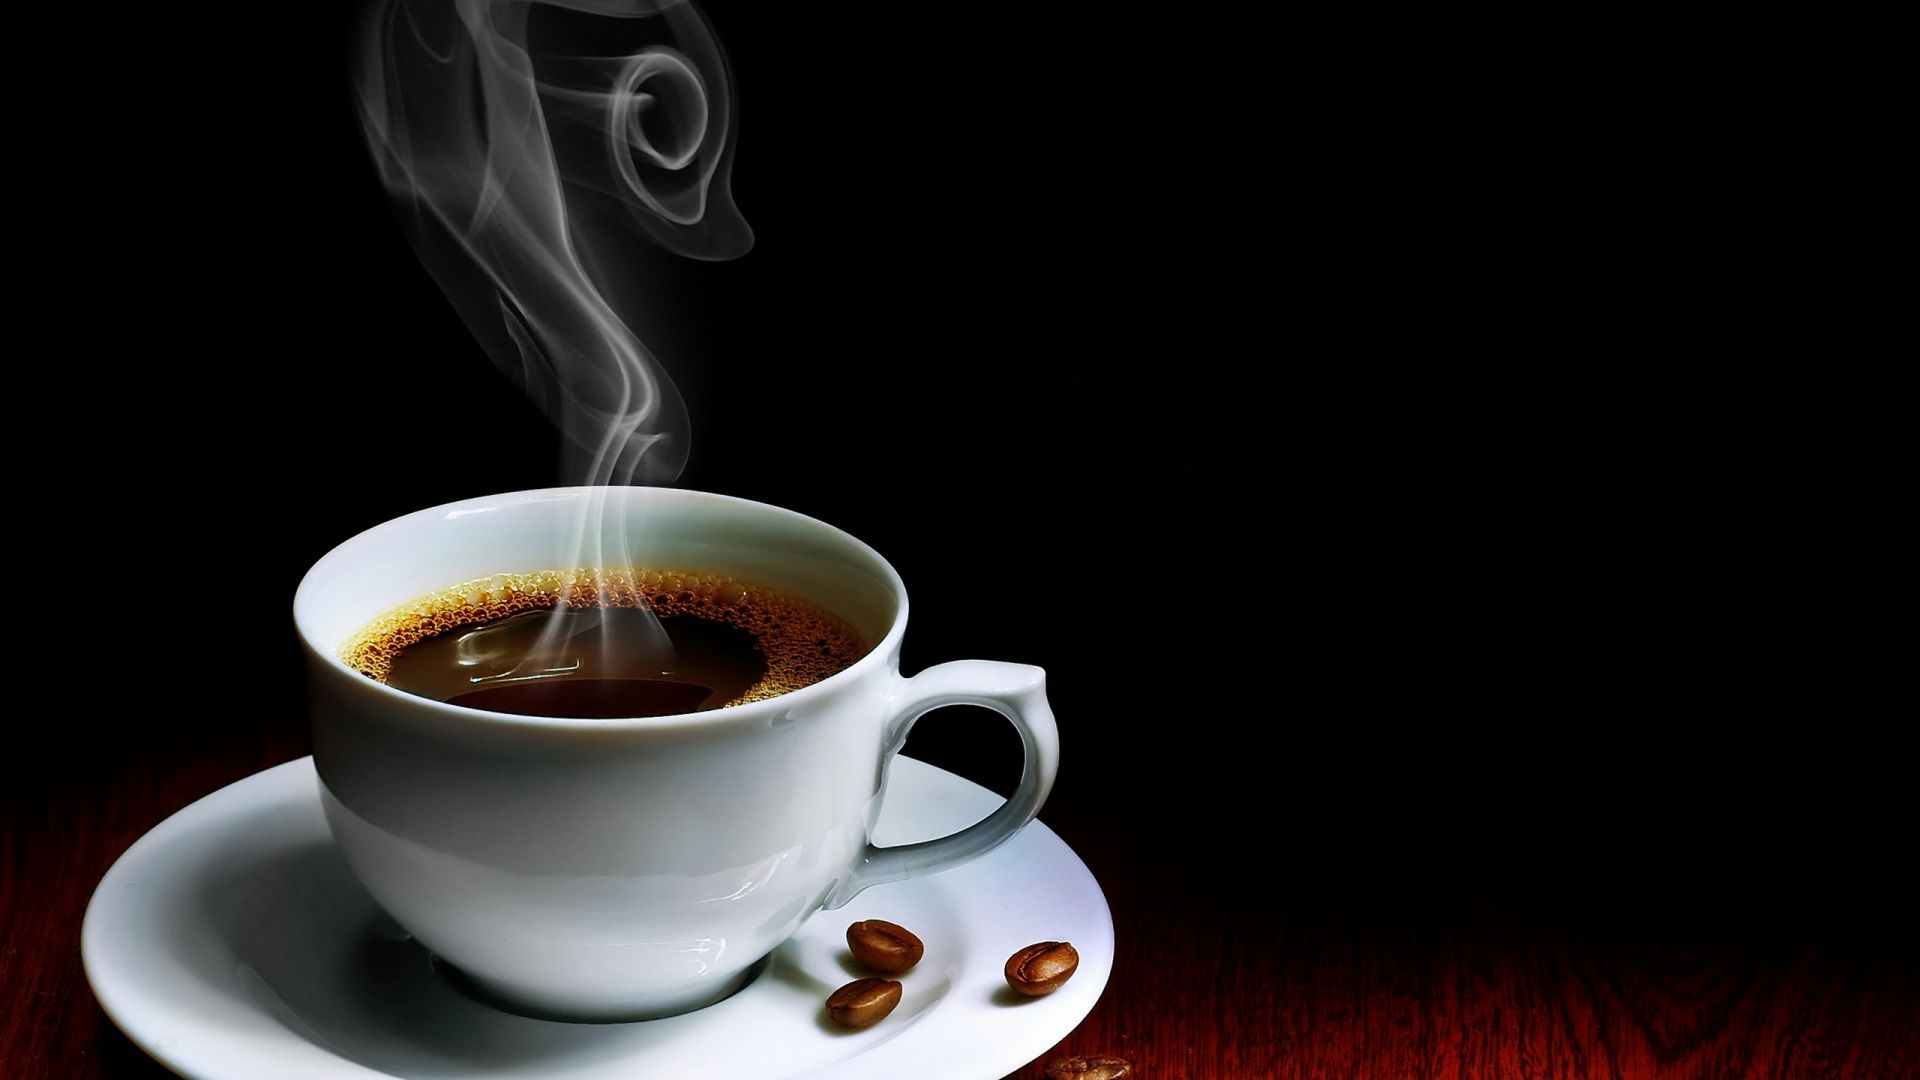 Download Wallpaper 1920x1080 Cup Coffee Steam Hot Grains Table Full Hd 1080p Hd Background Coffee Wallpaper Coffee Facts Coffee Scented Candles